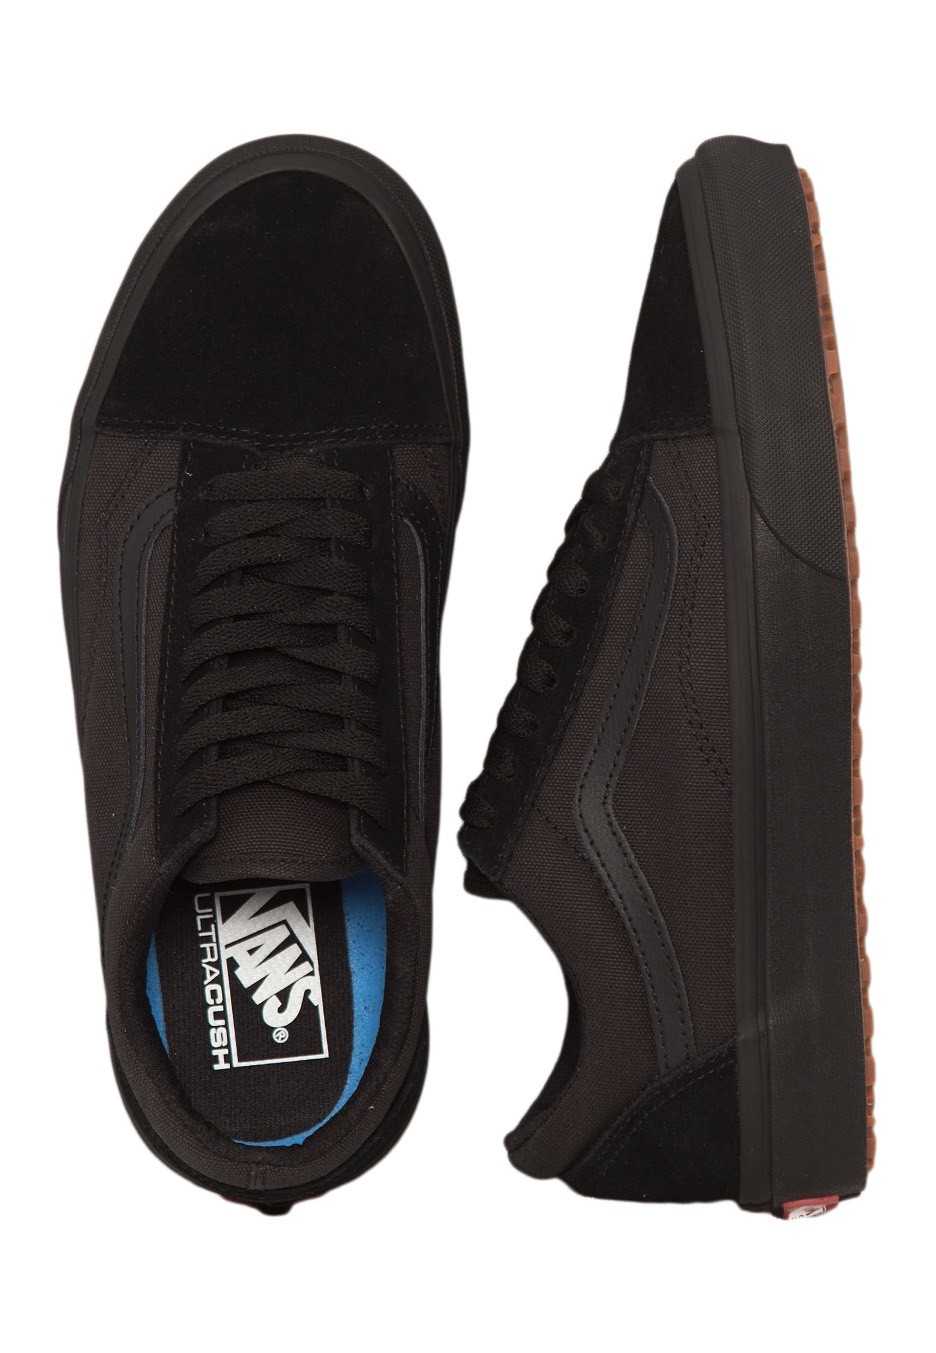 cb26775a20a Vans - Old Skool UC Made for the Makers Black Black - Shoes - Impericon.com  UK